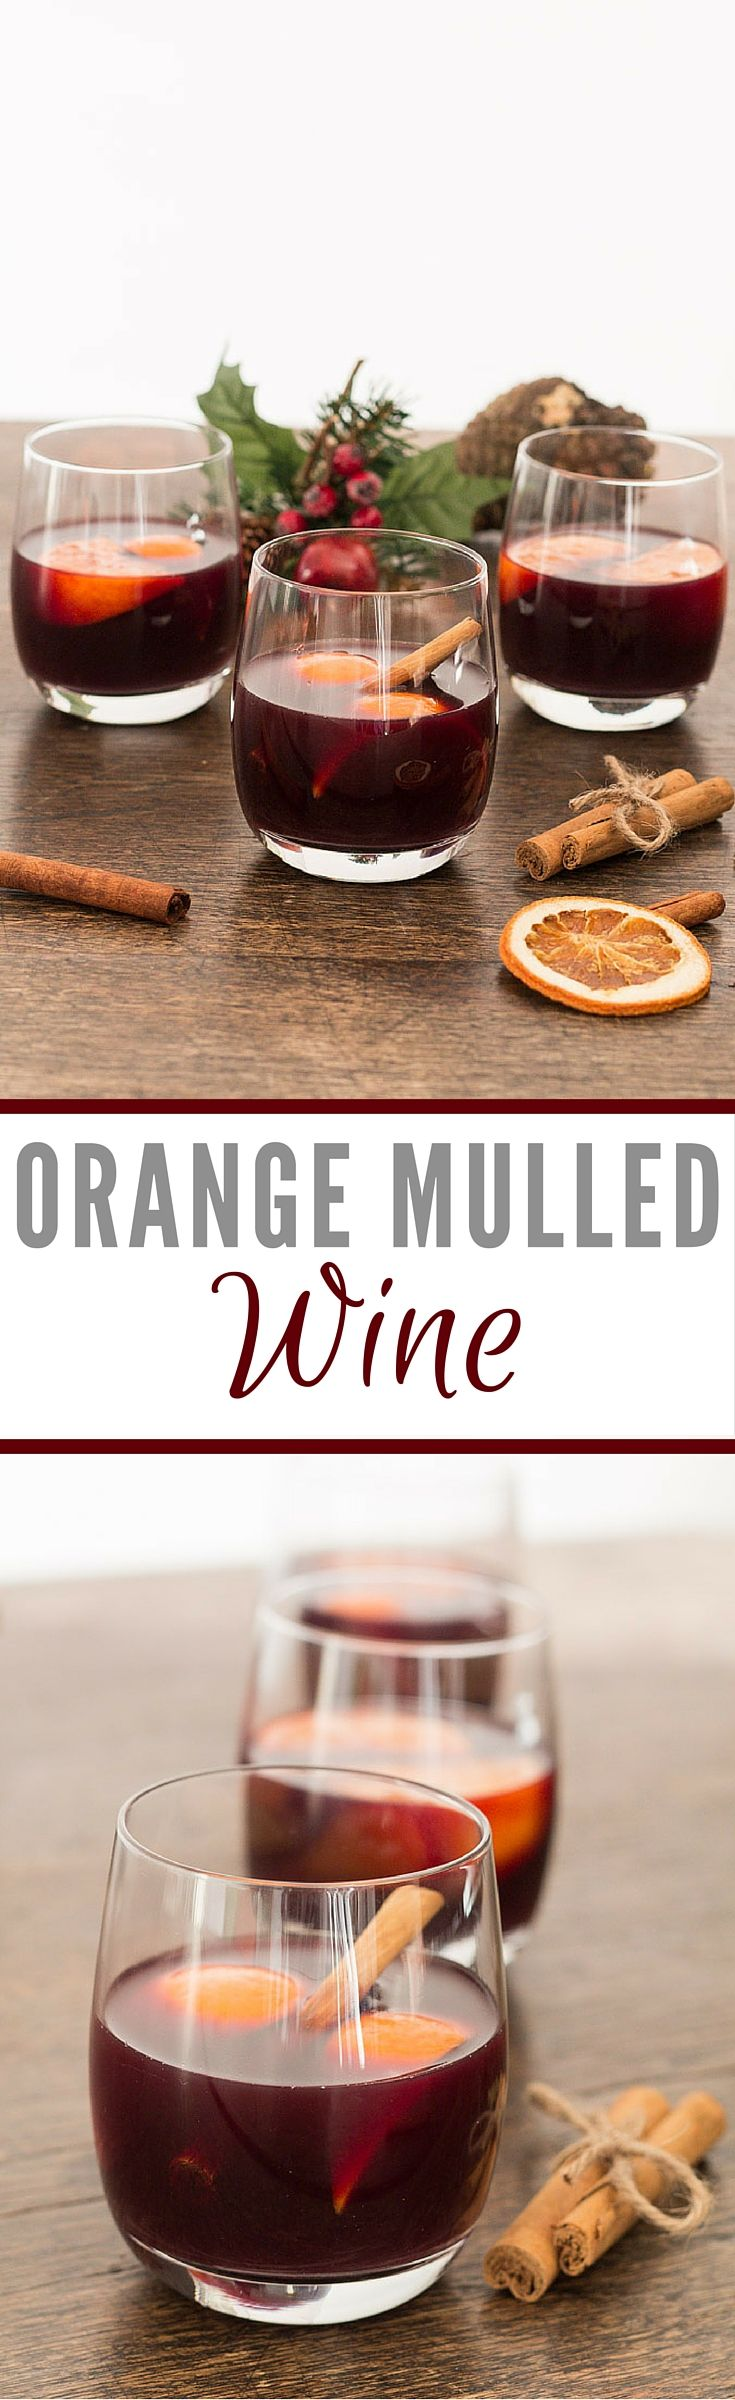 Orange Mulled Wine   Recipes From A Pantry